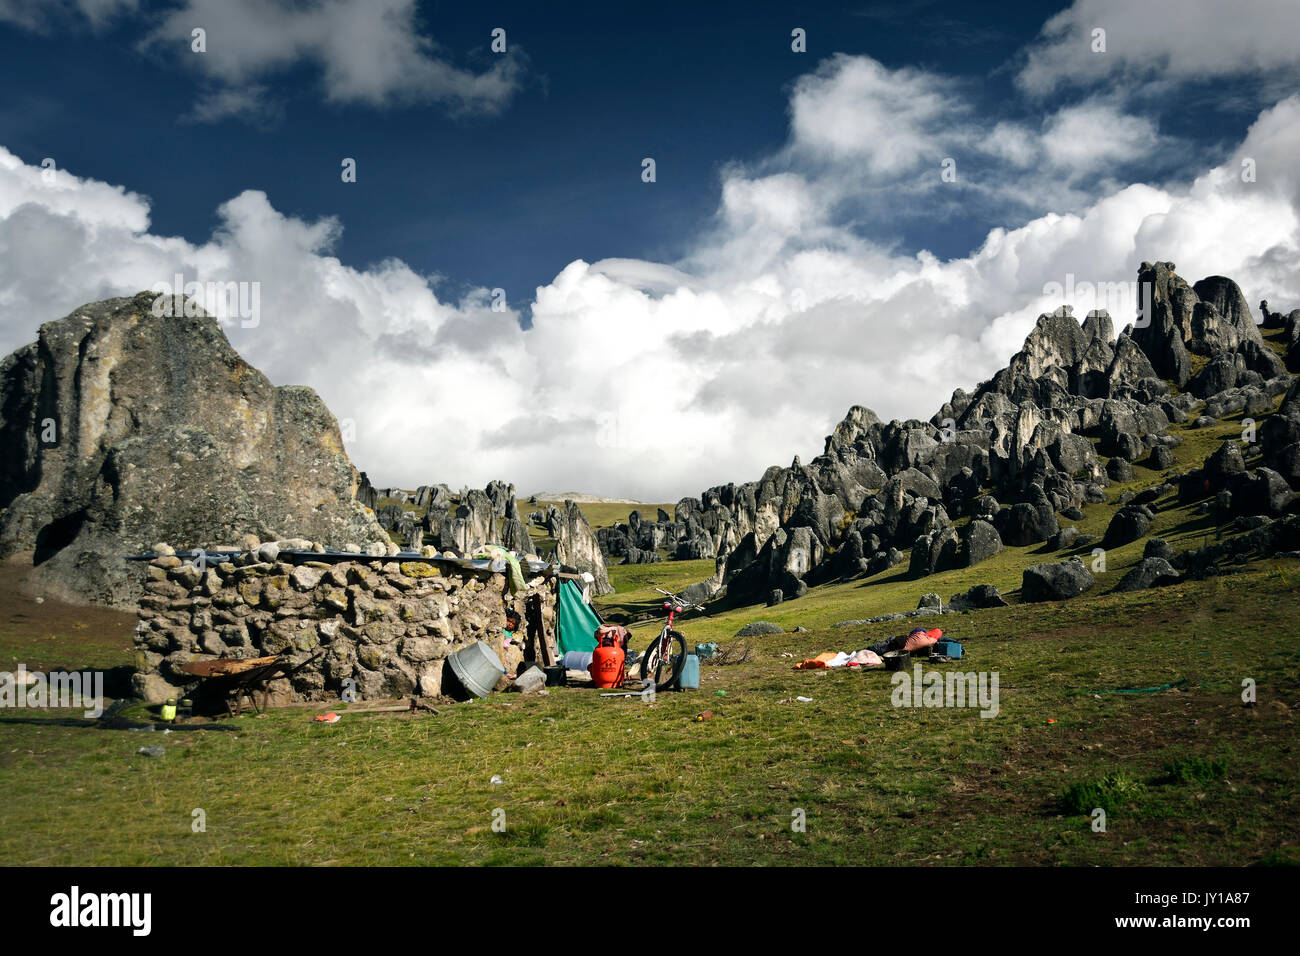 Stone house and stone forest in peru - Stock Image